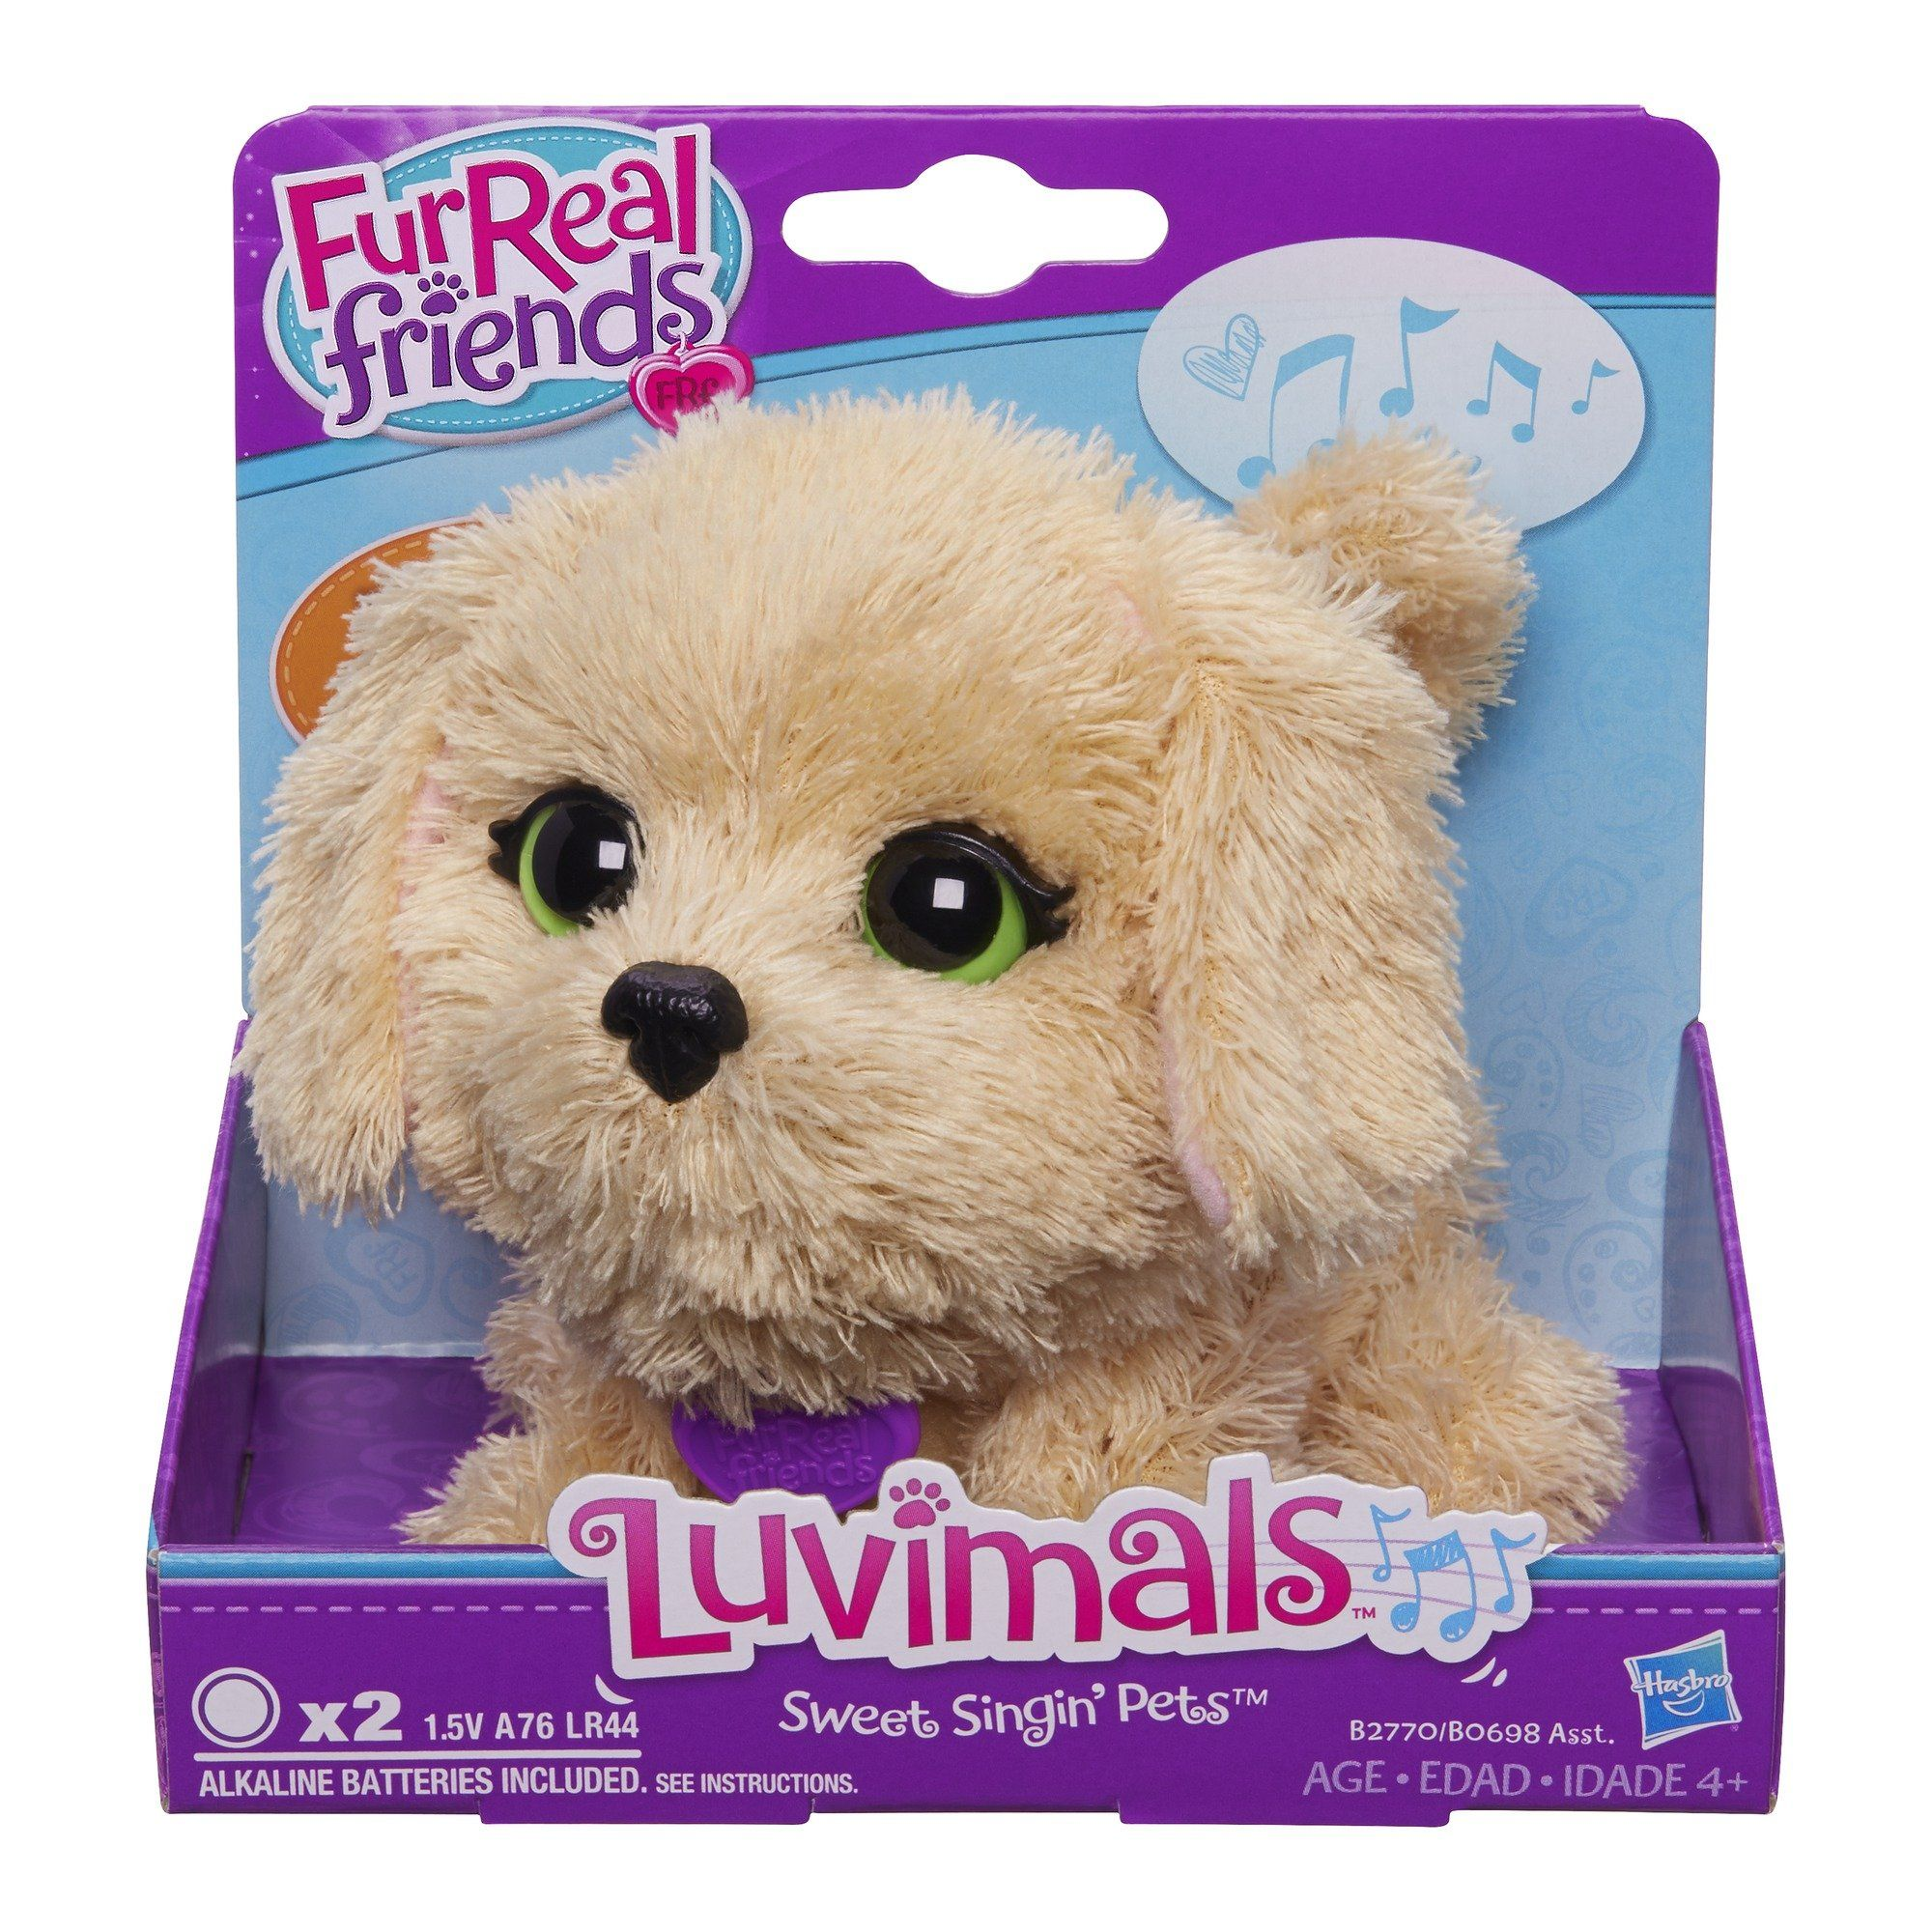 Furreal Friends Luvimals Sweet Singina Biscuit Pet Check